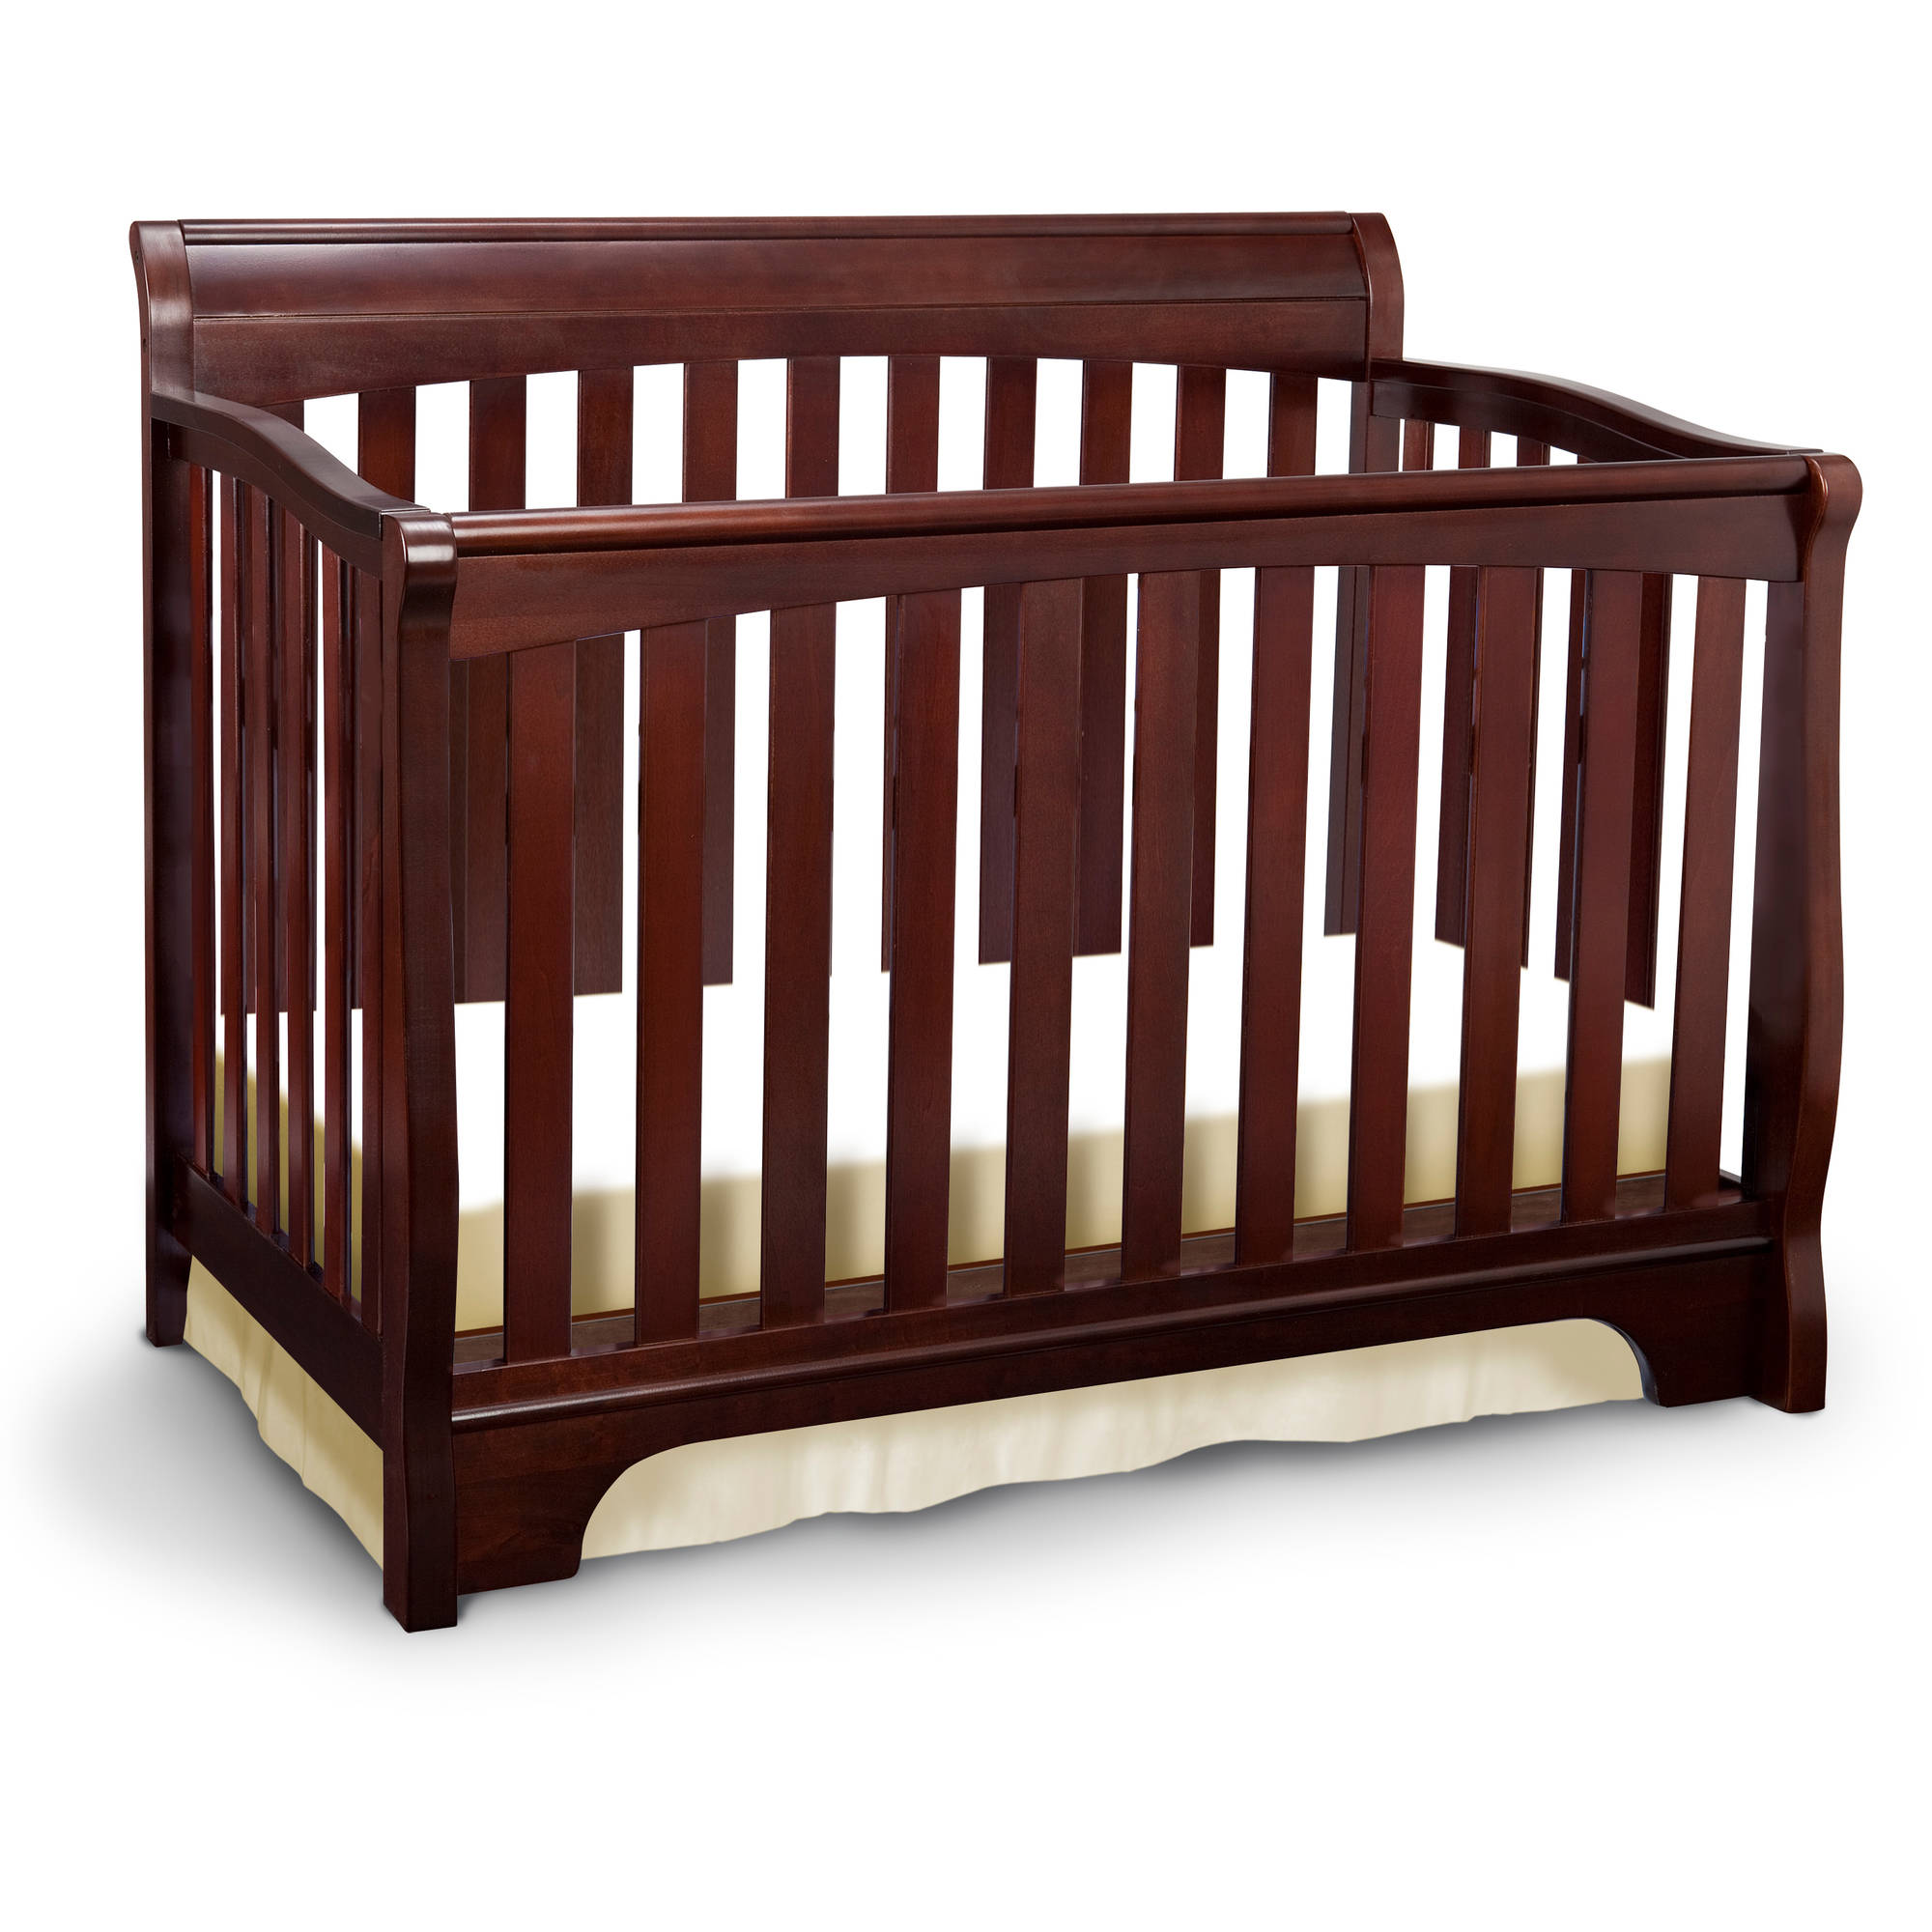 Delta Children Eclipse 4-in-1 Convertible Crib Cherry